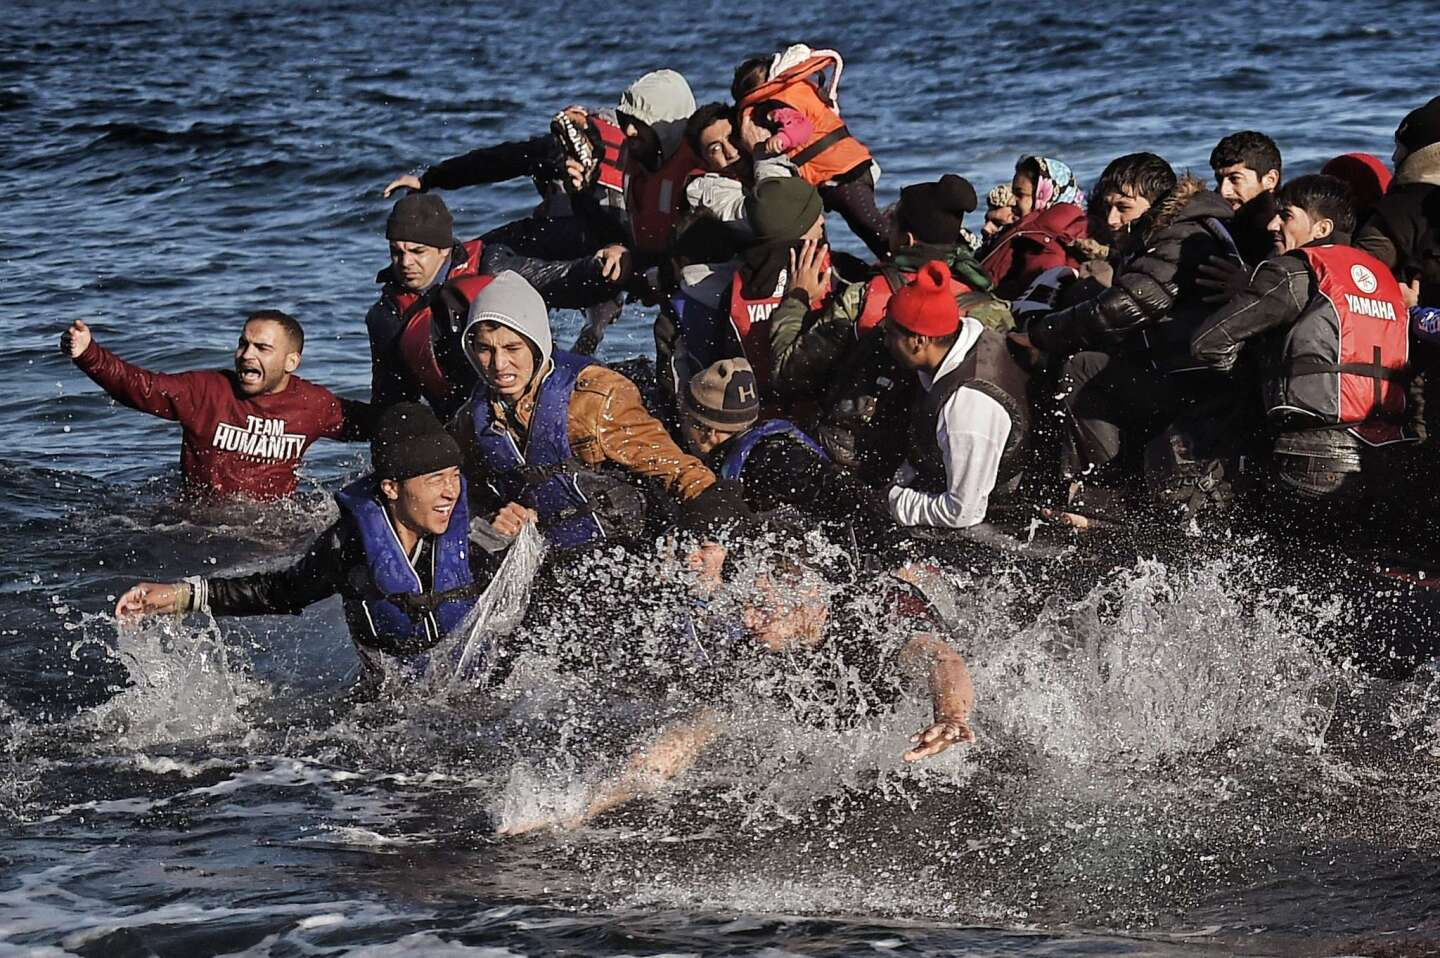 Migrants arrive on the Greek island of Lesbos after crossing the Aegean Sea from Turkey. More than 218,000 migrants and refugees crossed the Mediterranean to Europe in October -- a monthly record and more than during the whole of 2014.